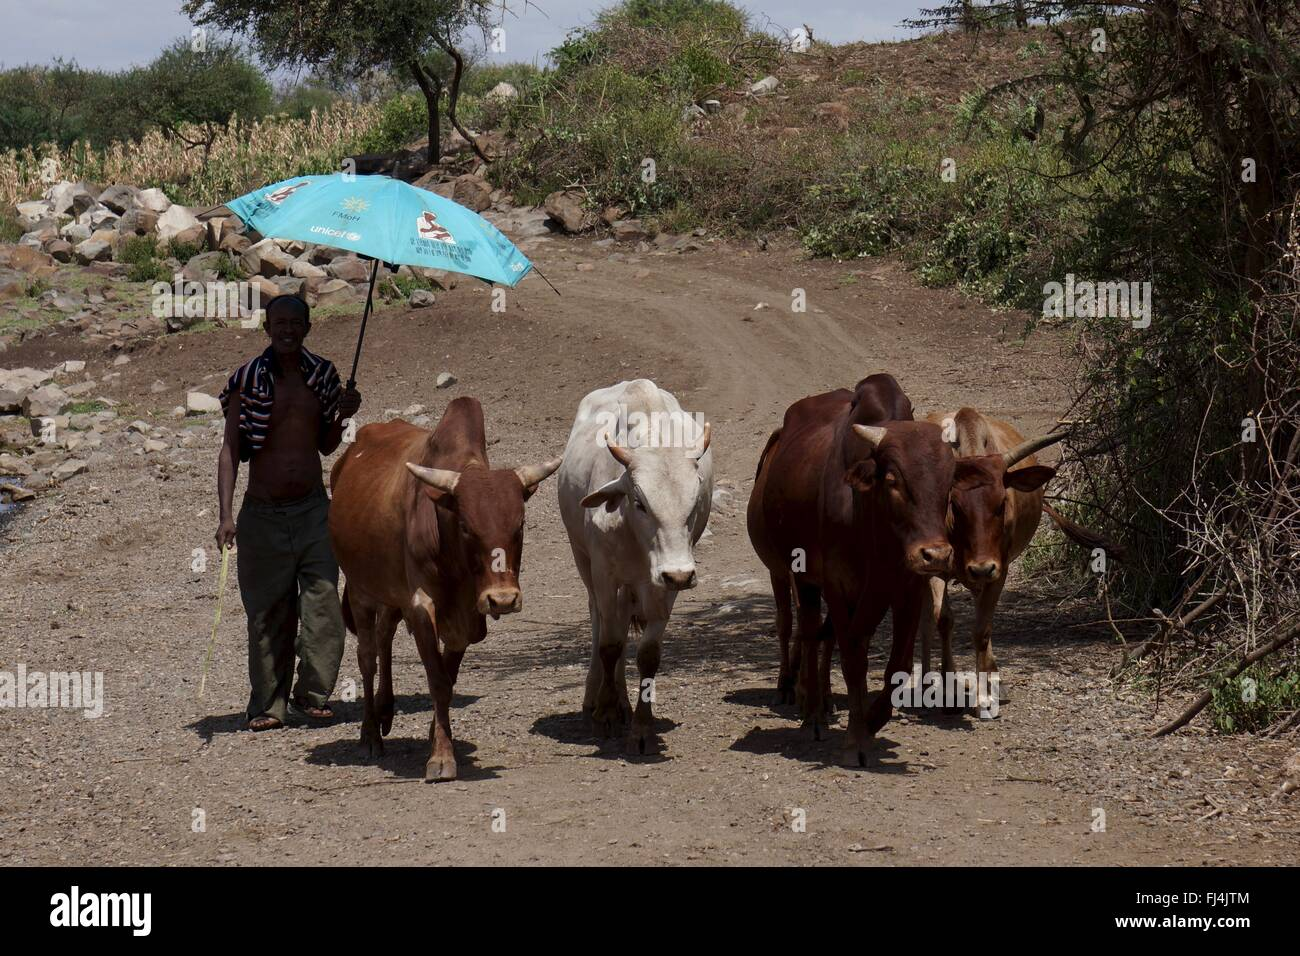 Farmer takes shade under umbrella whilst moving his cattle - Stock Image